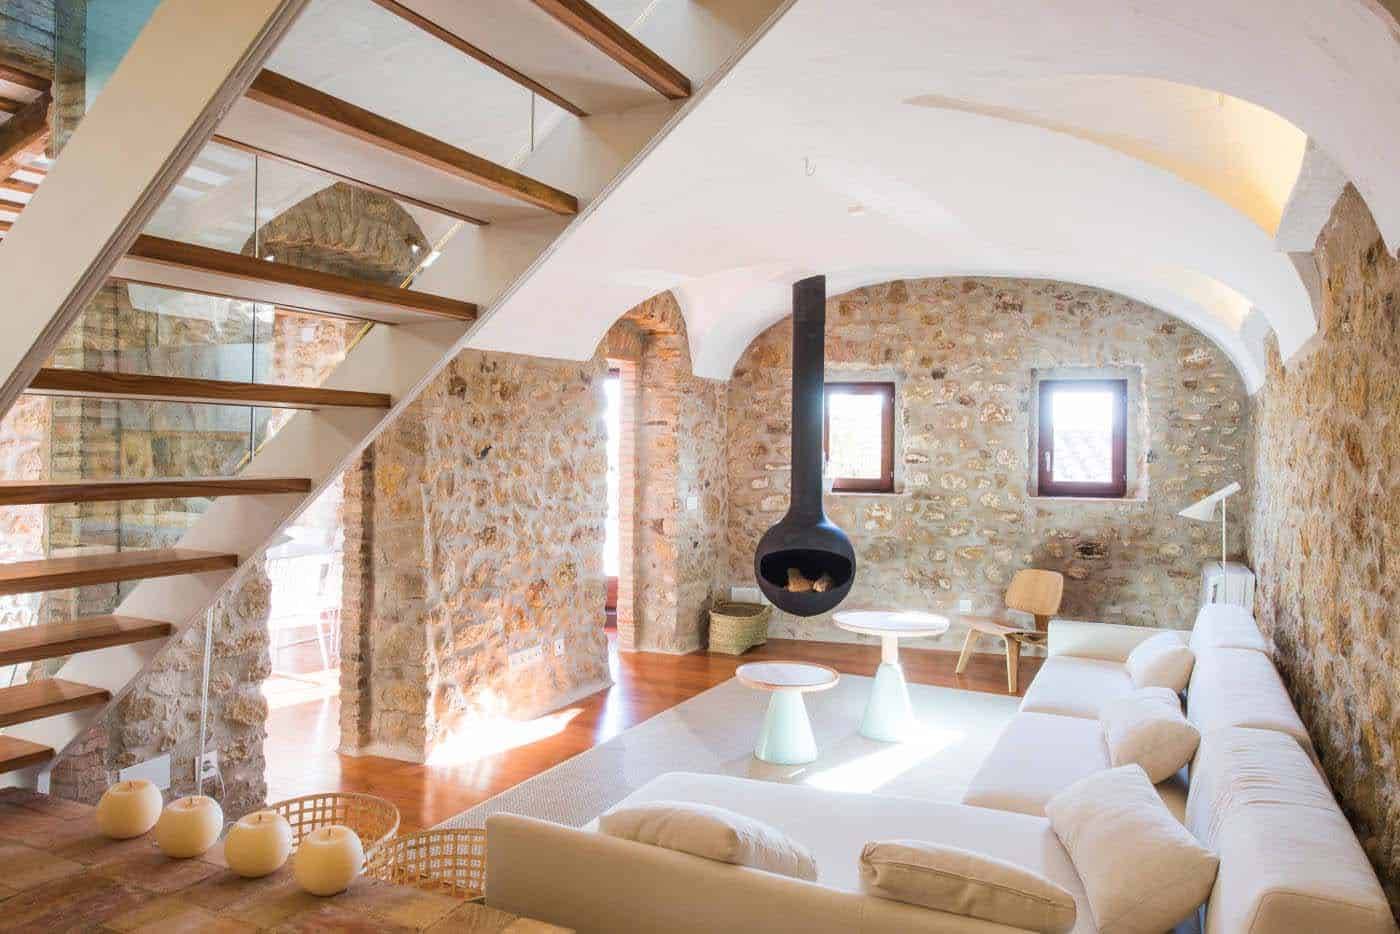 Historic Stone Dwelling-Gloria Duran Torrellas-05-1 Kindesign